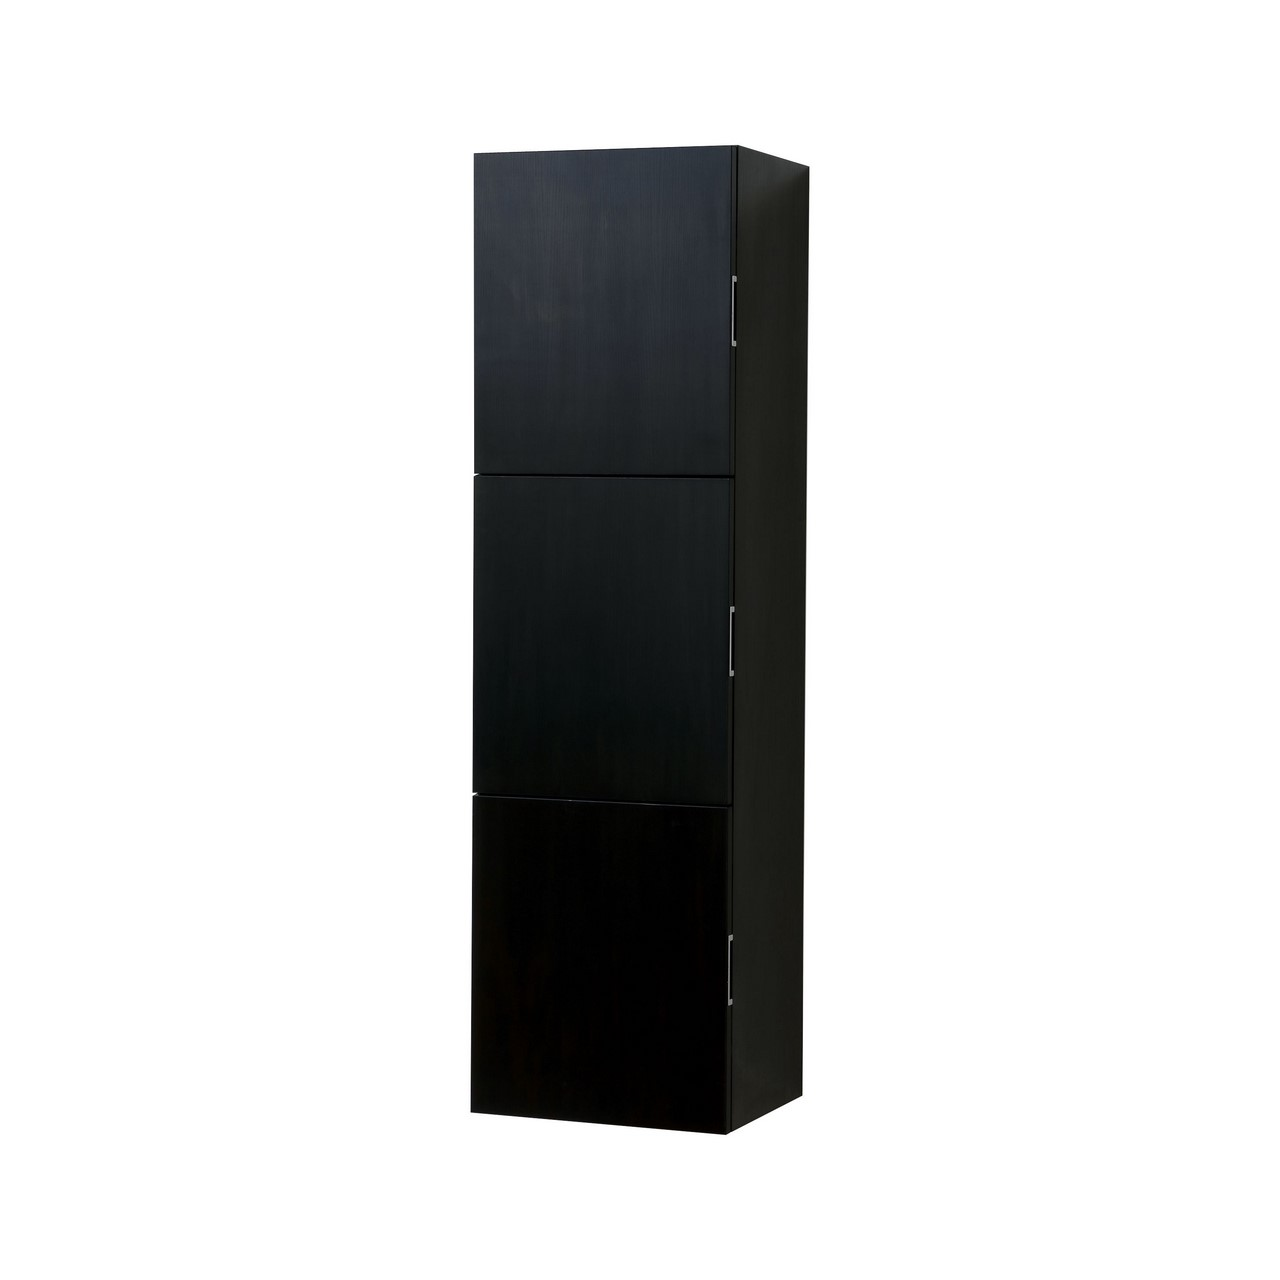 Black Wood Bathroom Linen Cabinet W/ 3 Large Storage Areas